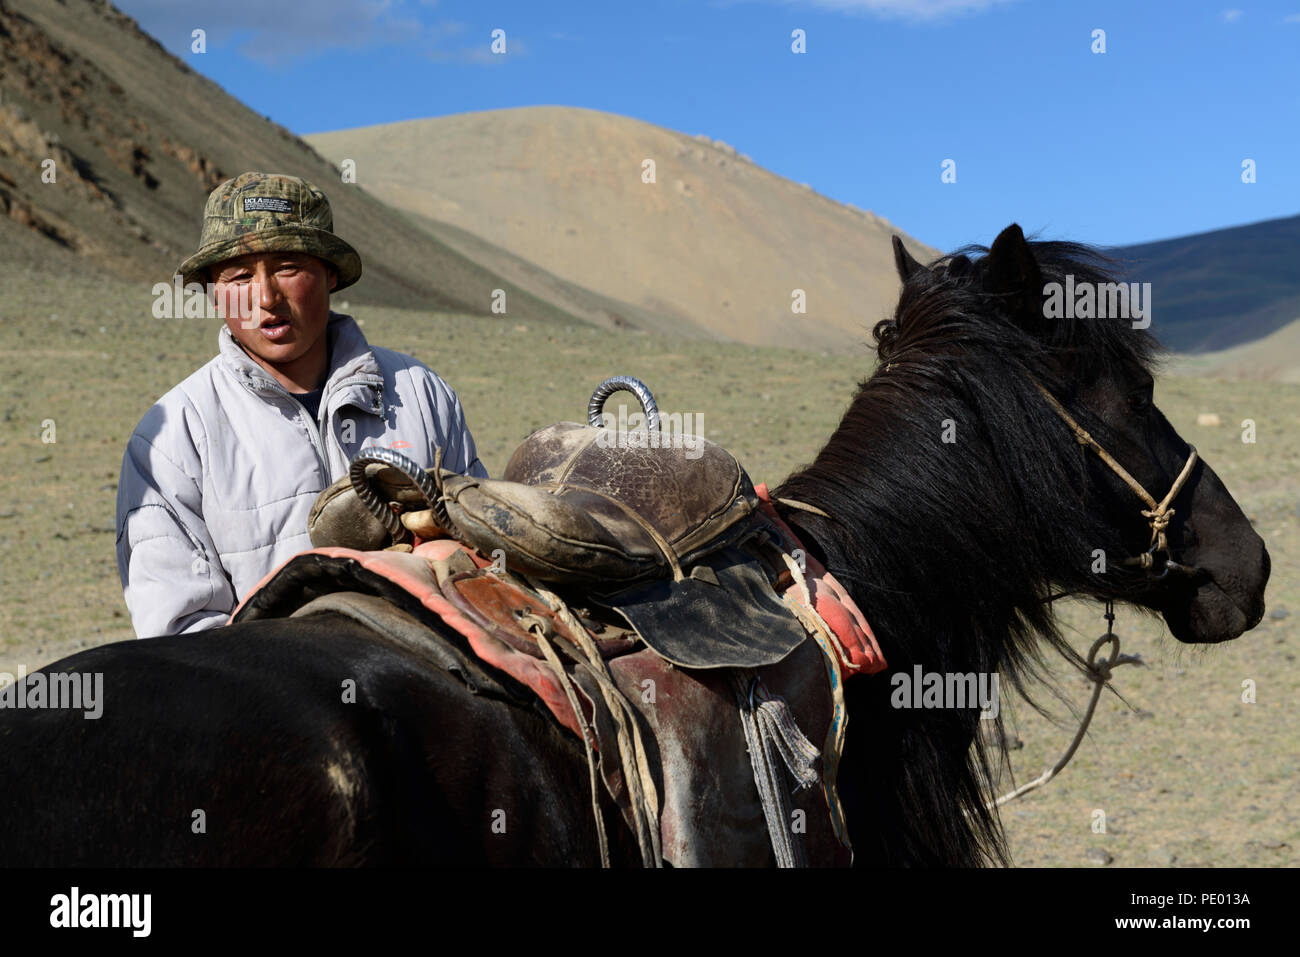 A boy and his horse on the steppe of Mongolia. - Stock Image